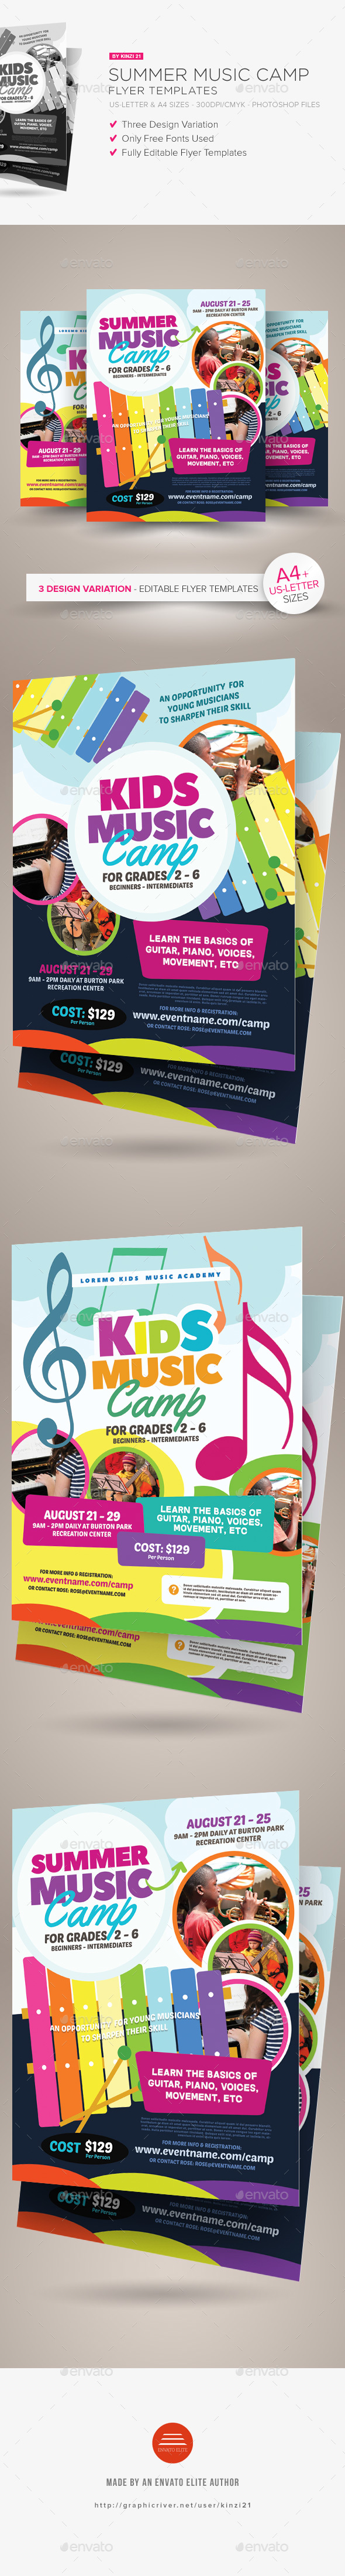 Summer Music Camp Flyer Templates - Miscellaneous Events